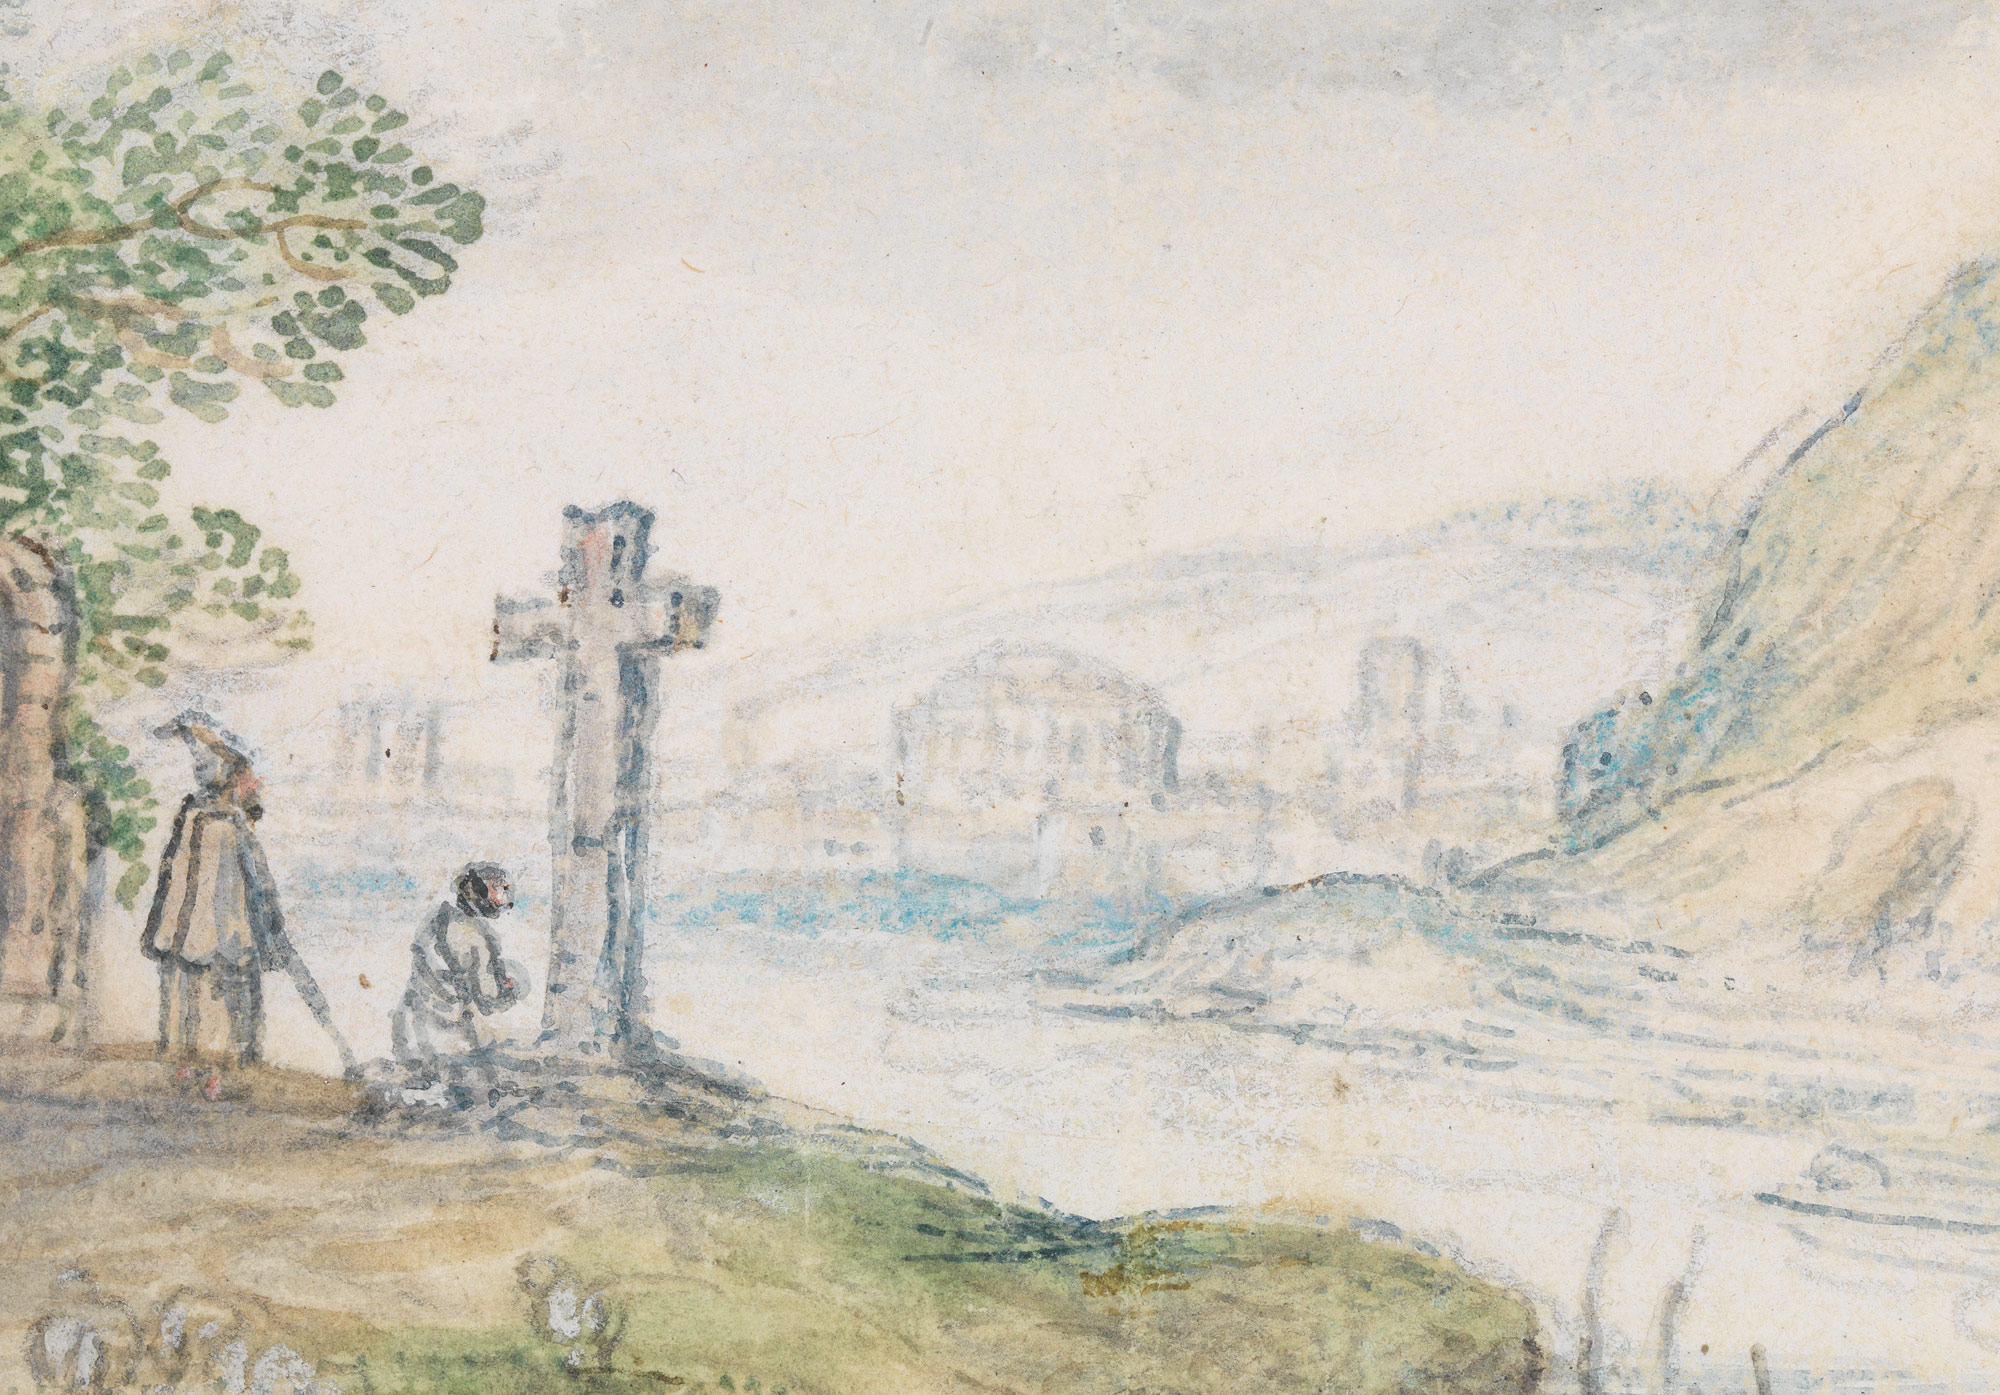 A Wooded River Landscape with a Church and Figures